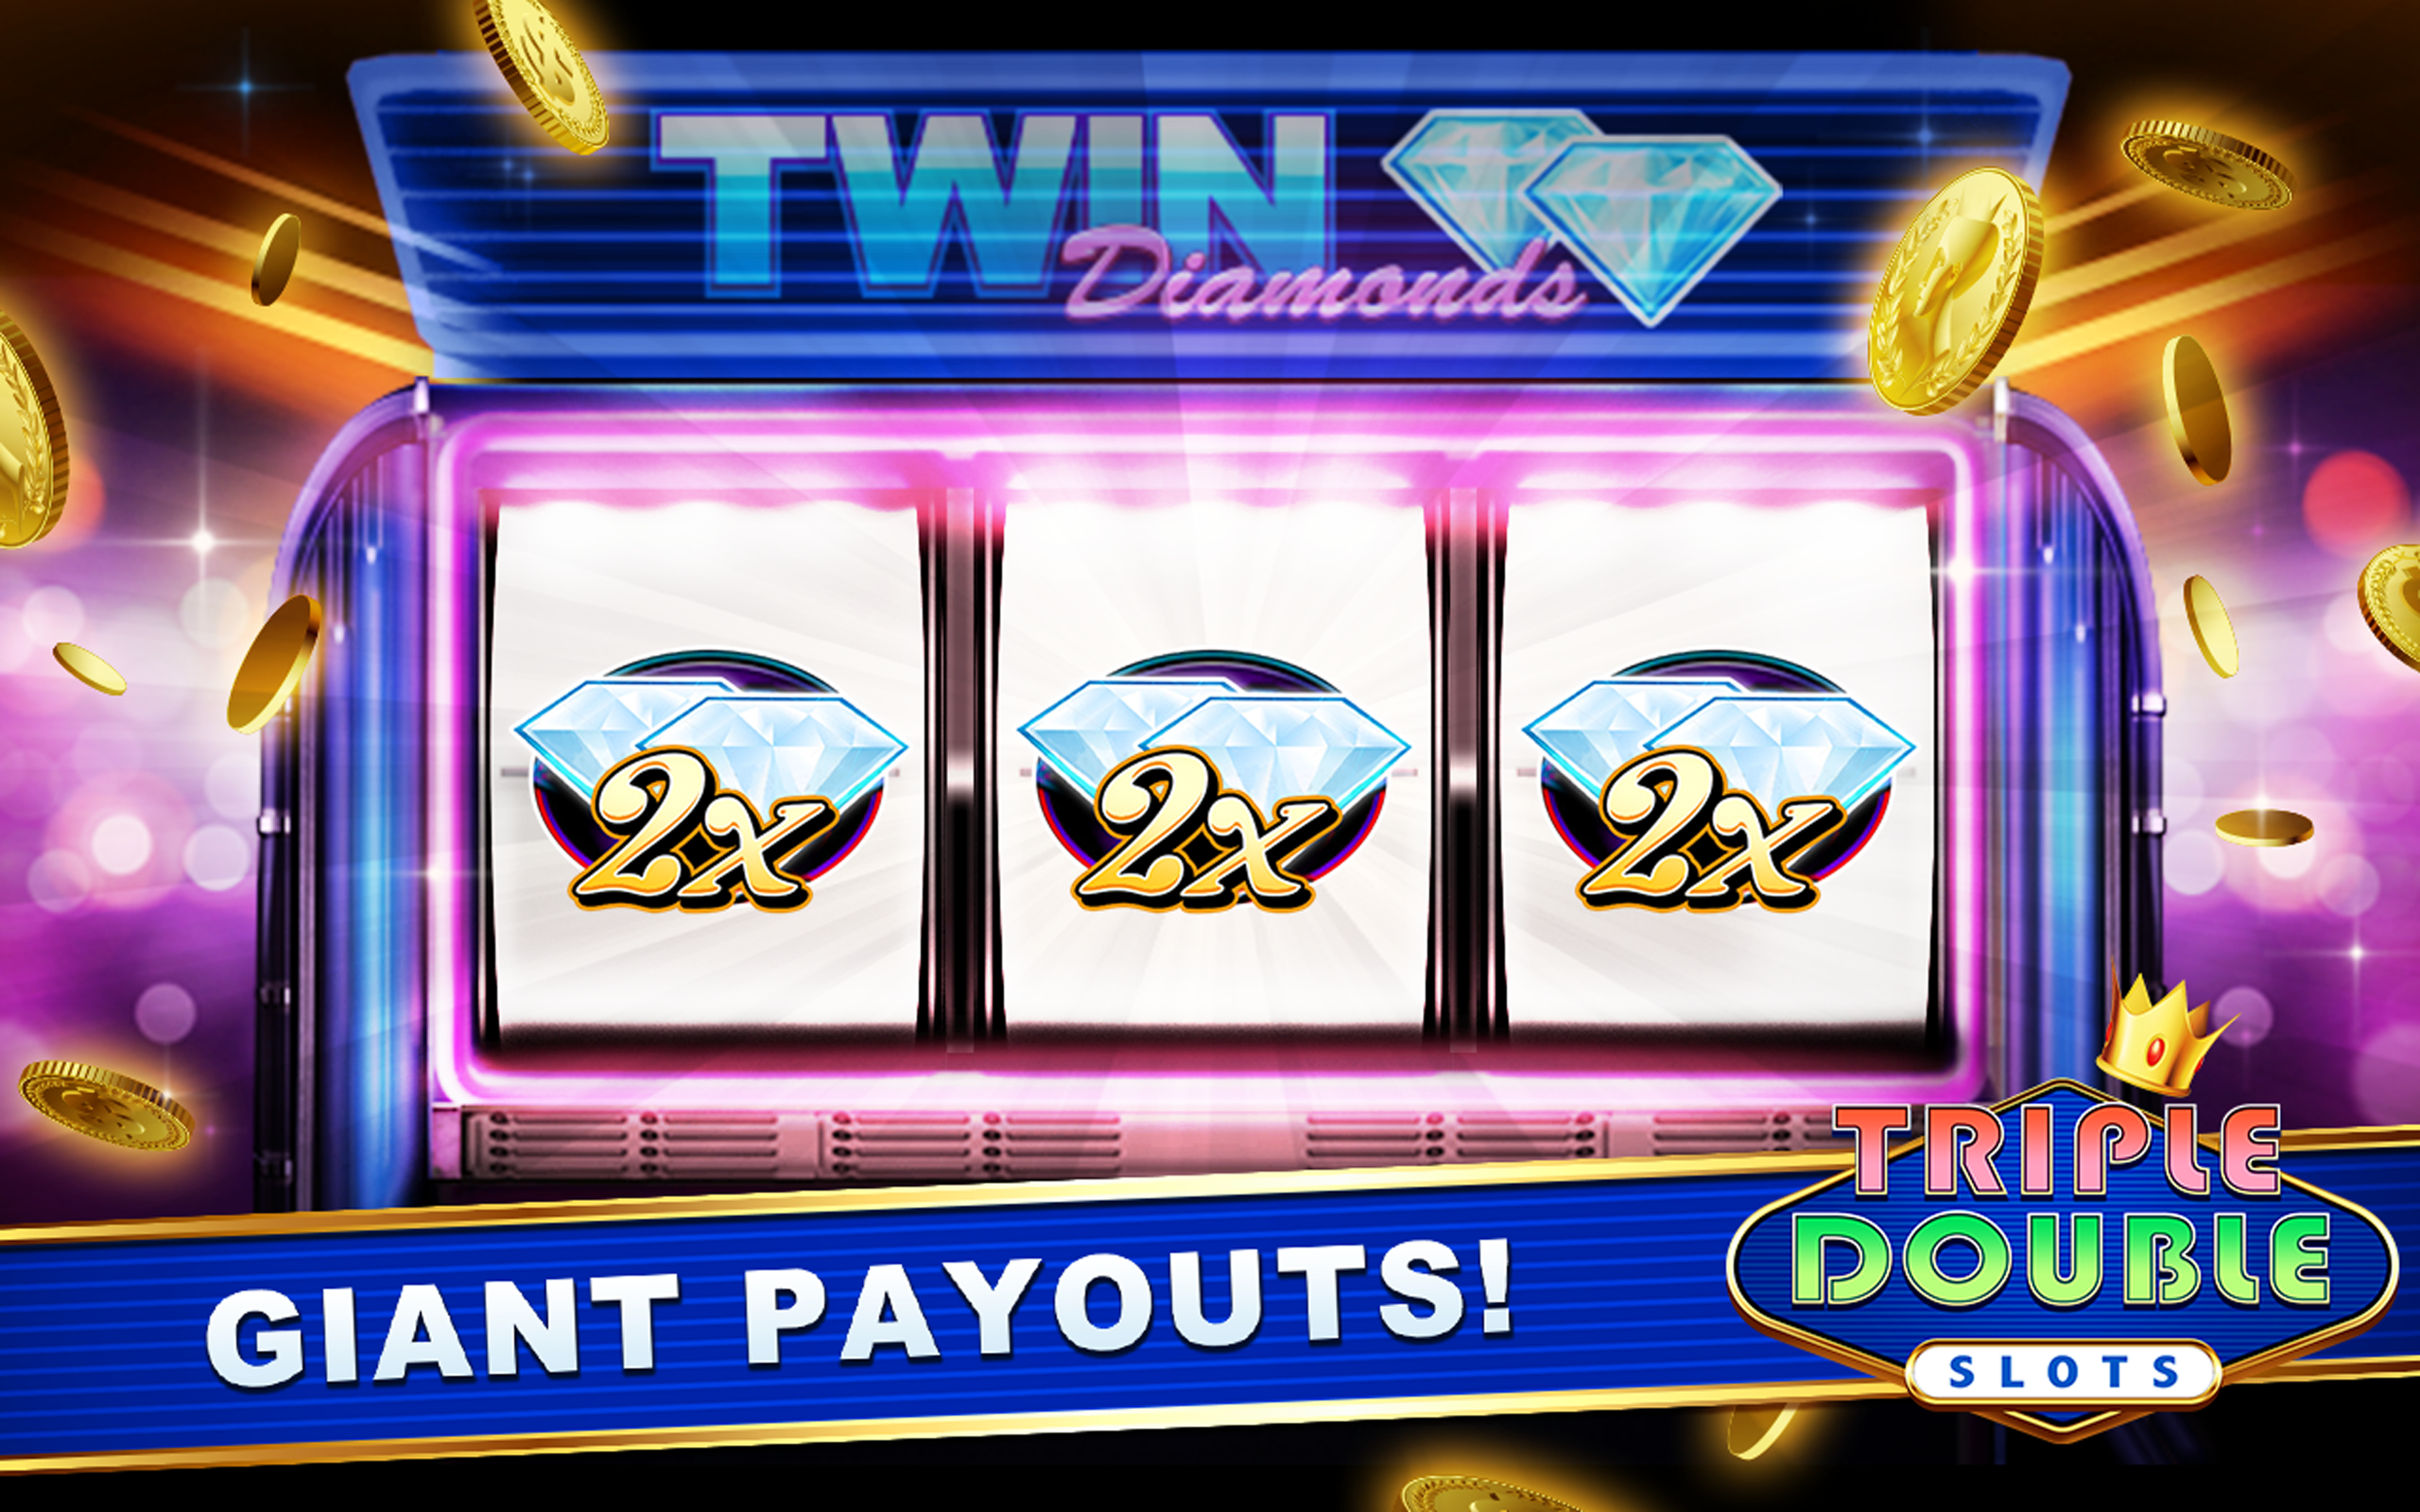 Amazon.com: Triple Double Slots Free Slots Games - Las Vegas Slot